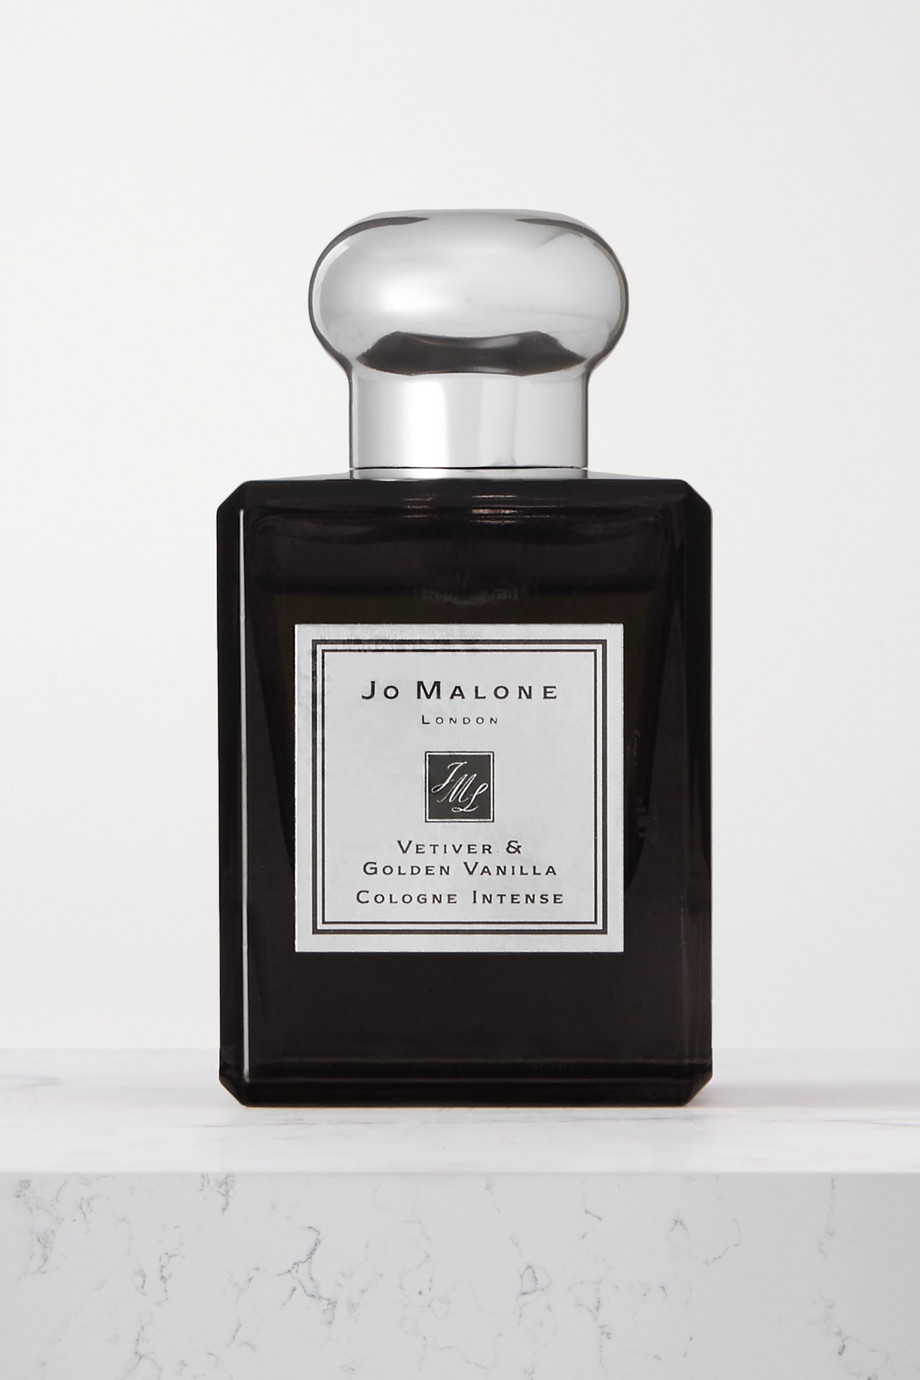 Jo Malone London Vetiver & Golden Vanilla Cologne Intense, 50 ml – Eau de Cologne